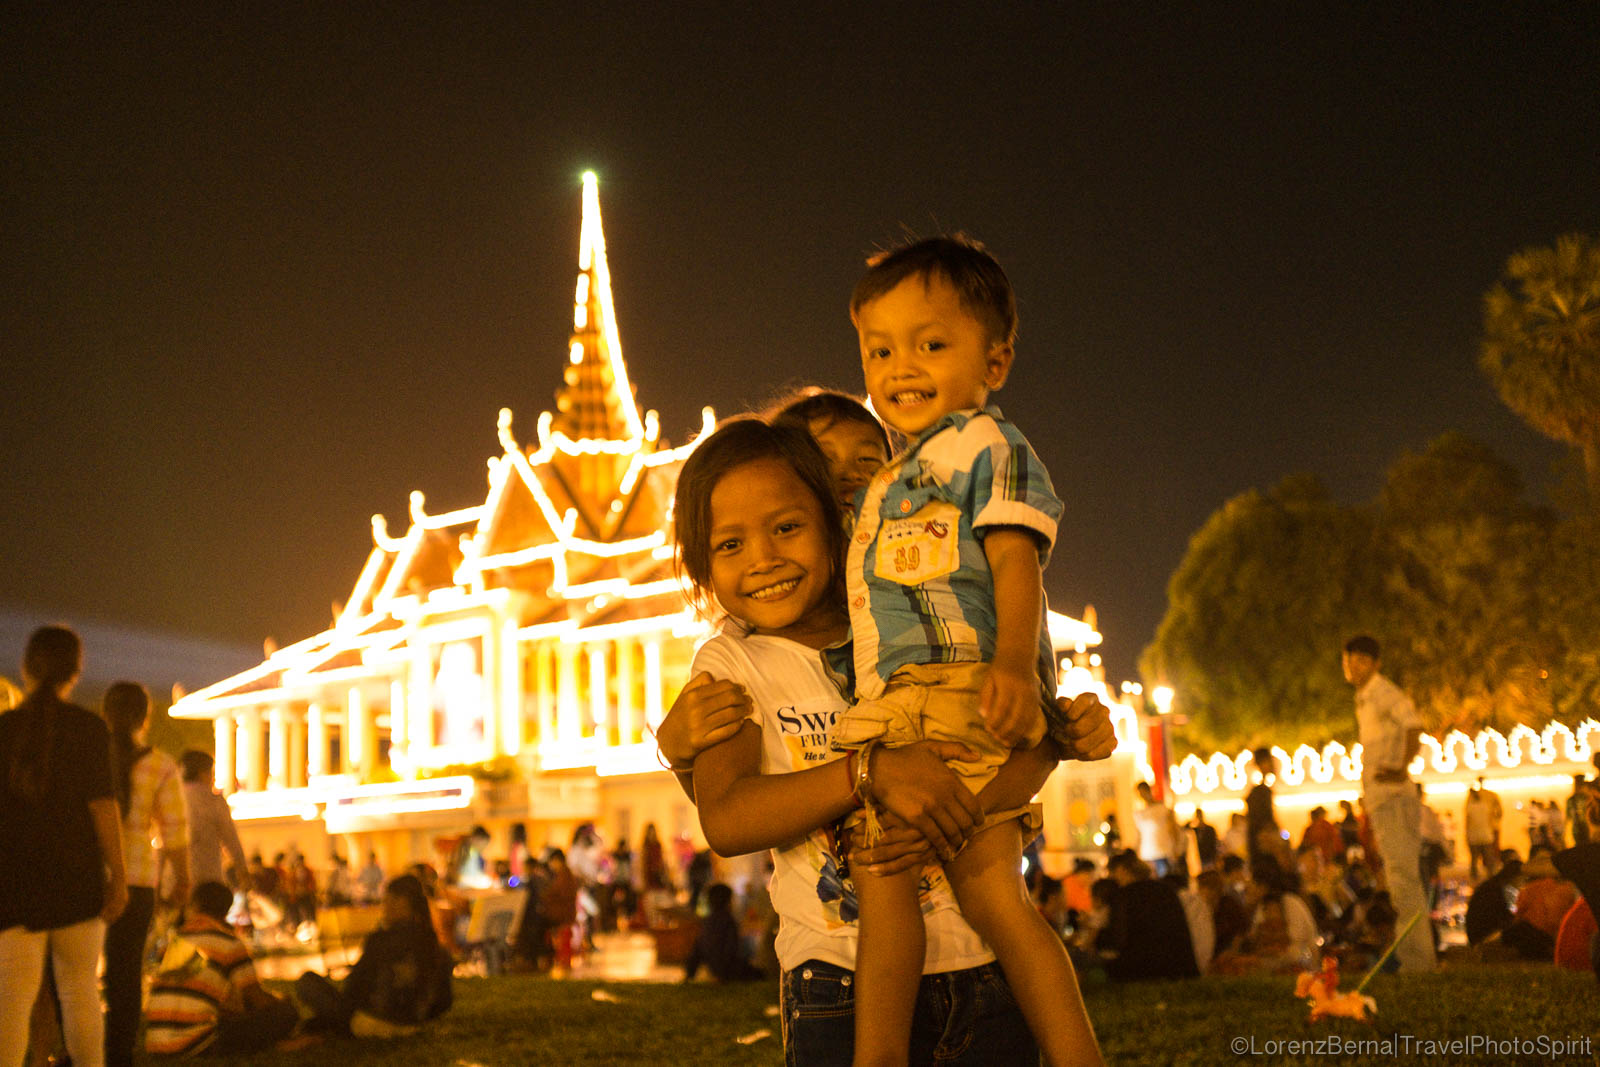 Cambodian children in front of Phnom Penh Royal Palace, Cambodia